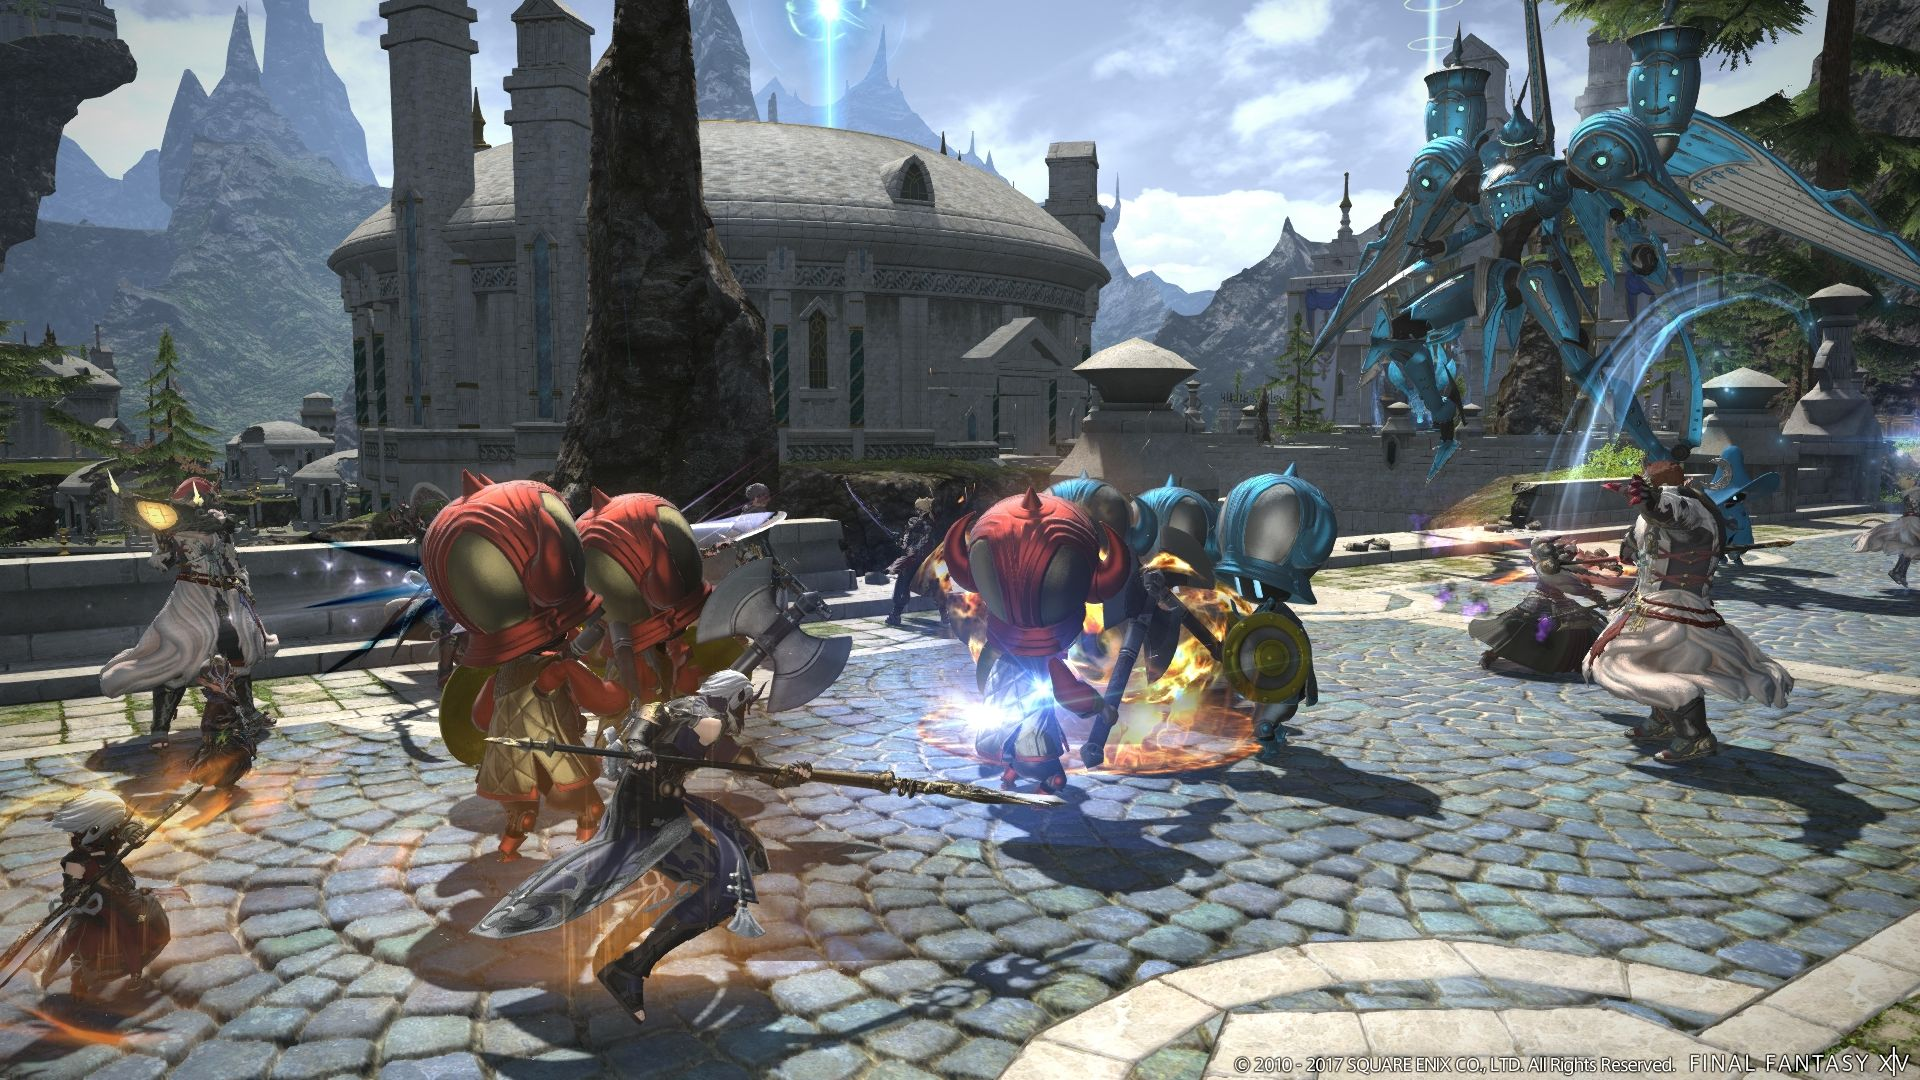 final-fantasy-xiv-update-4-1-the-legend-returns-mmorpg-square-enix_020